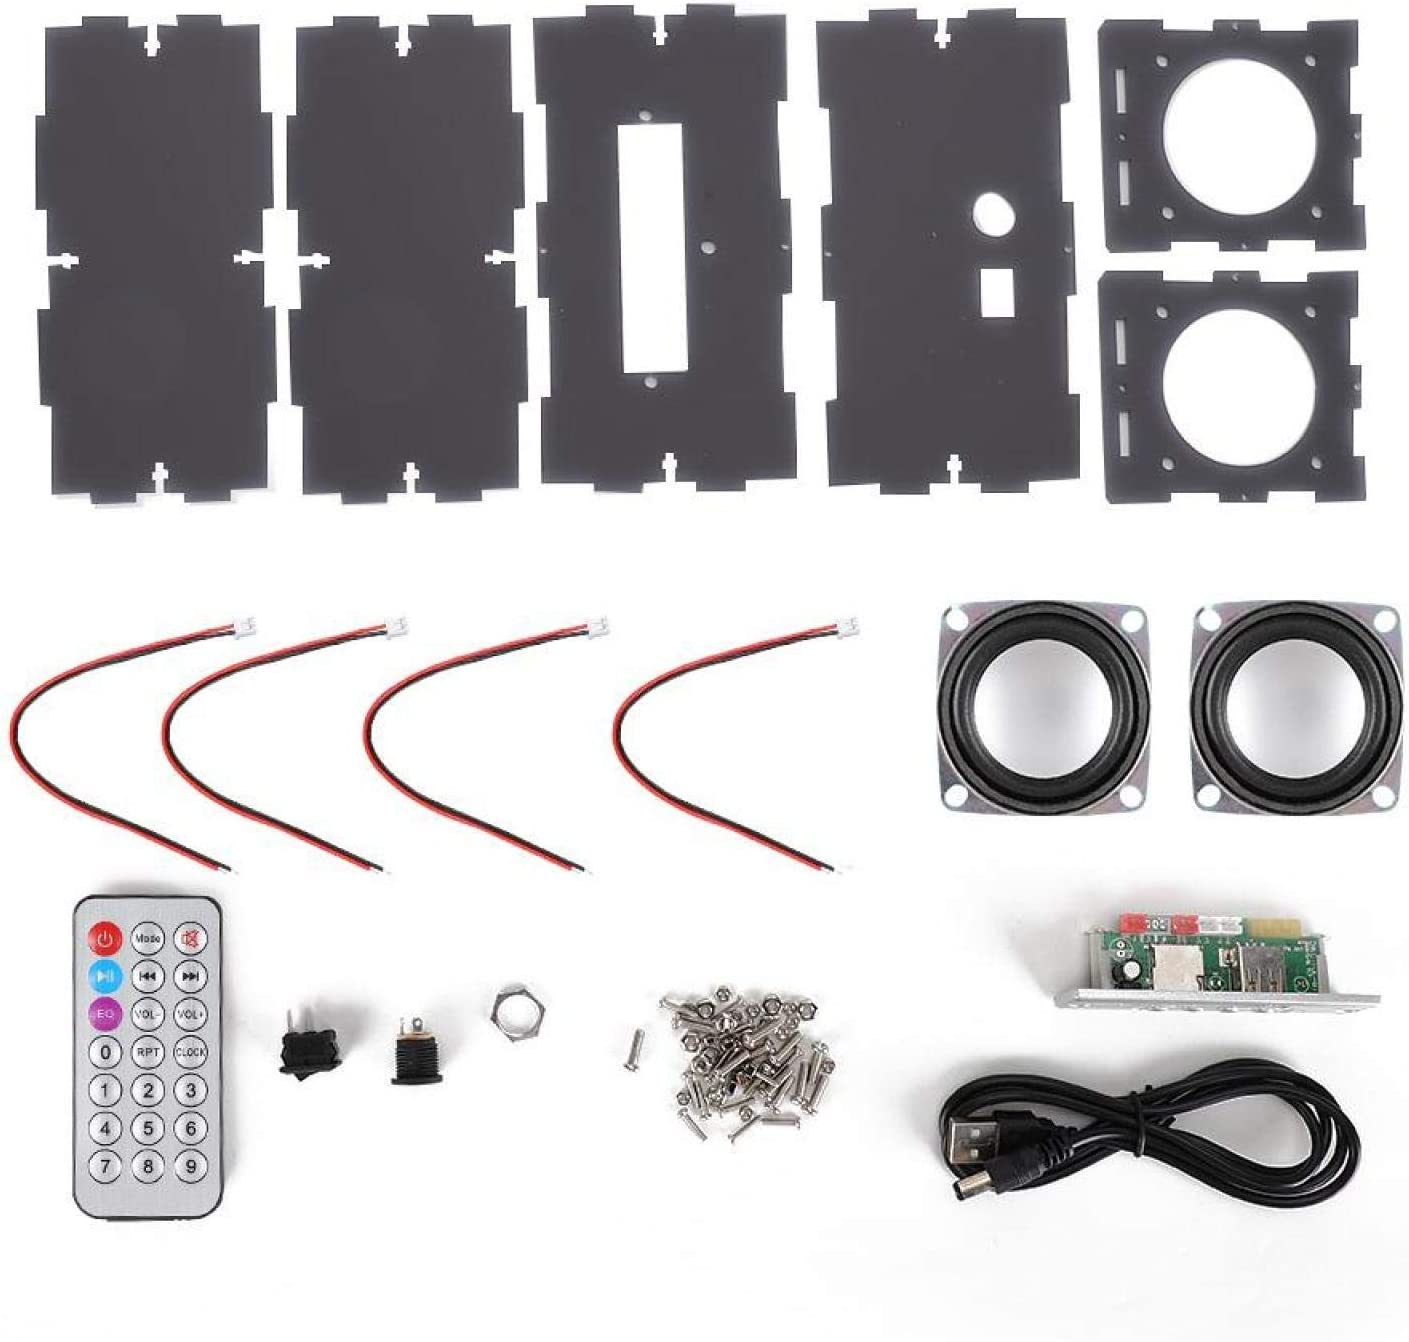 PUSOKEI DIY Bluetooth Speakers Kit 3W Assembly MP3 Maker Discount mail order Music Under blast sales